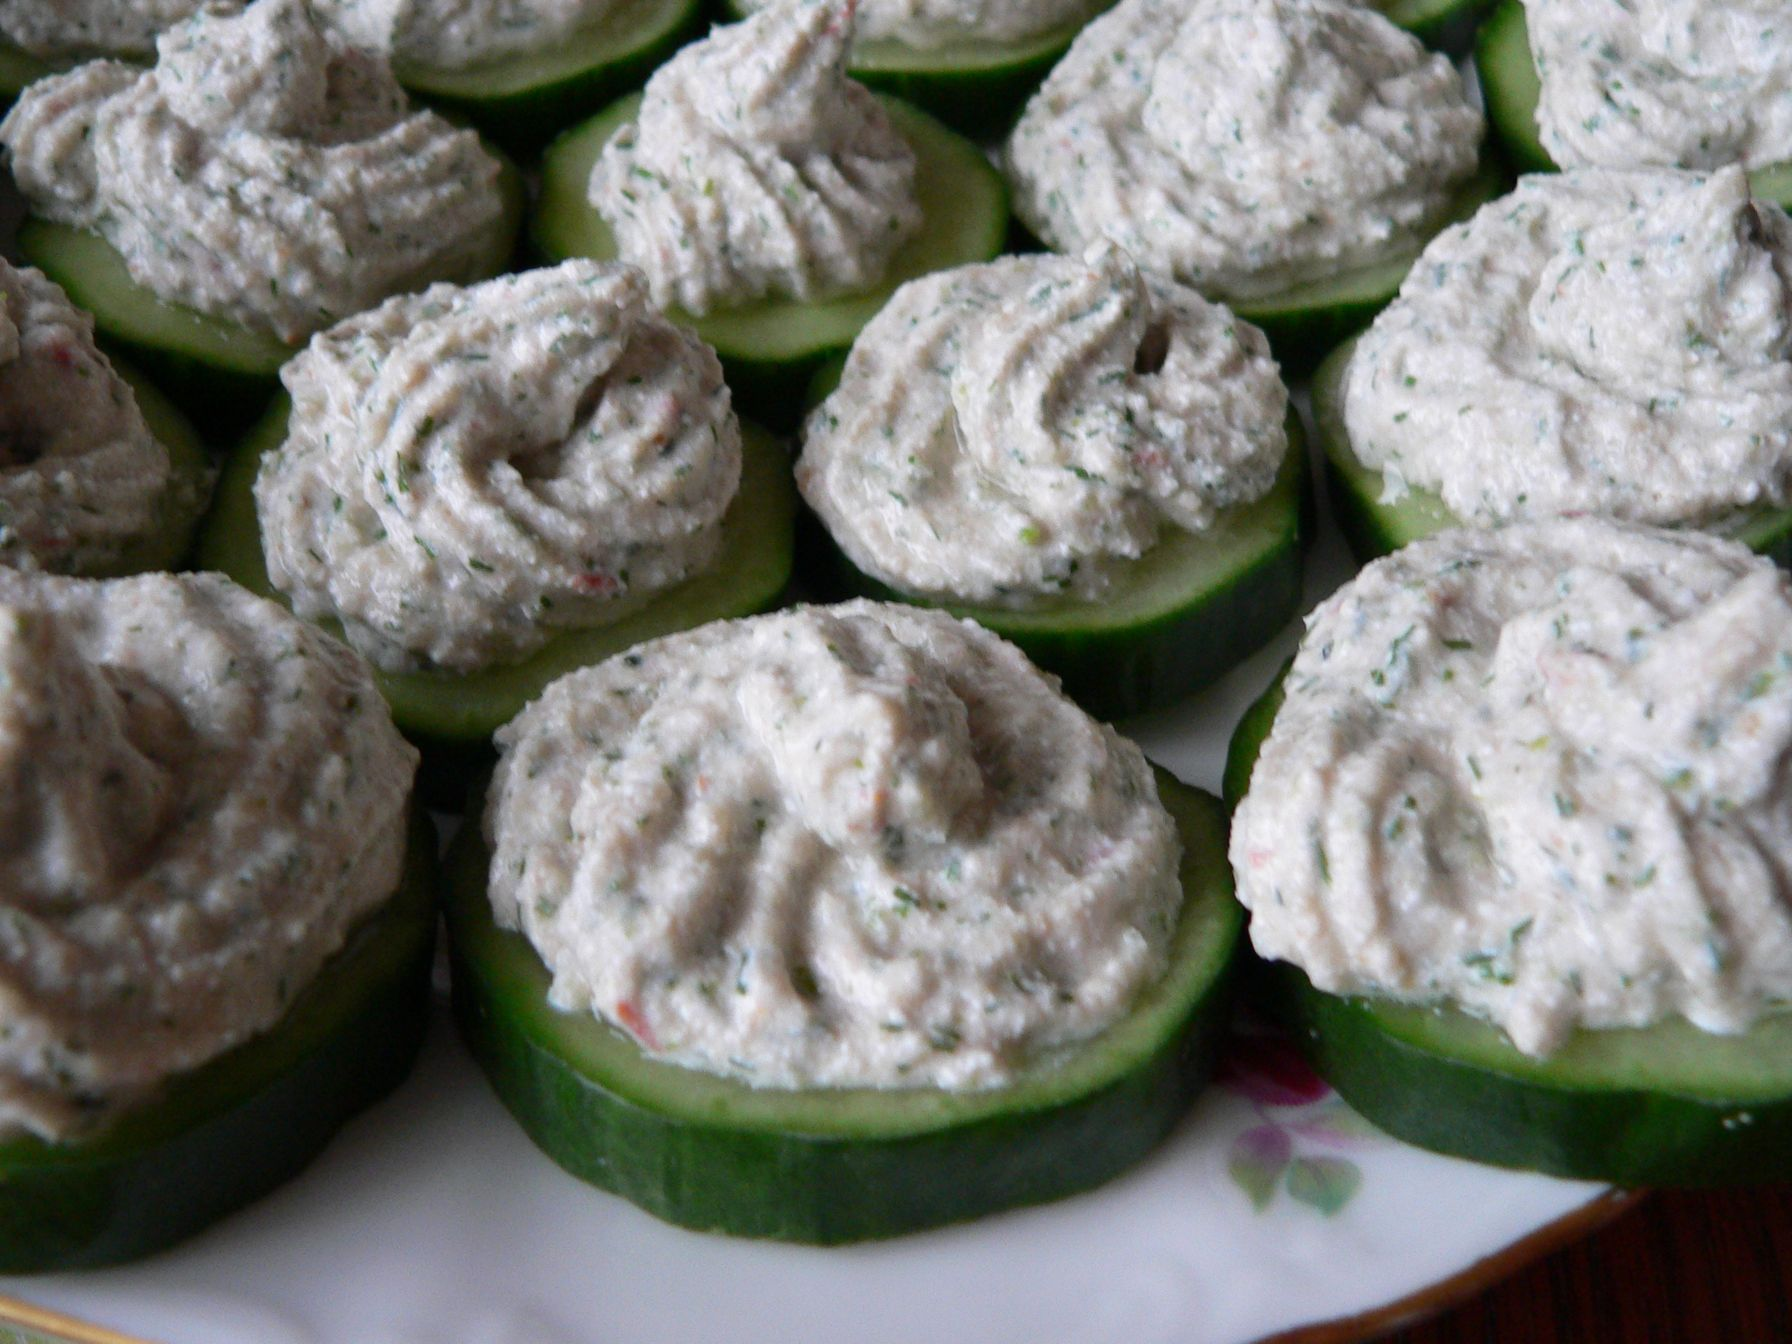 Cucumber bites with cottage cheese